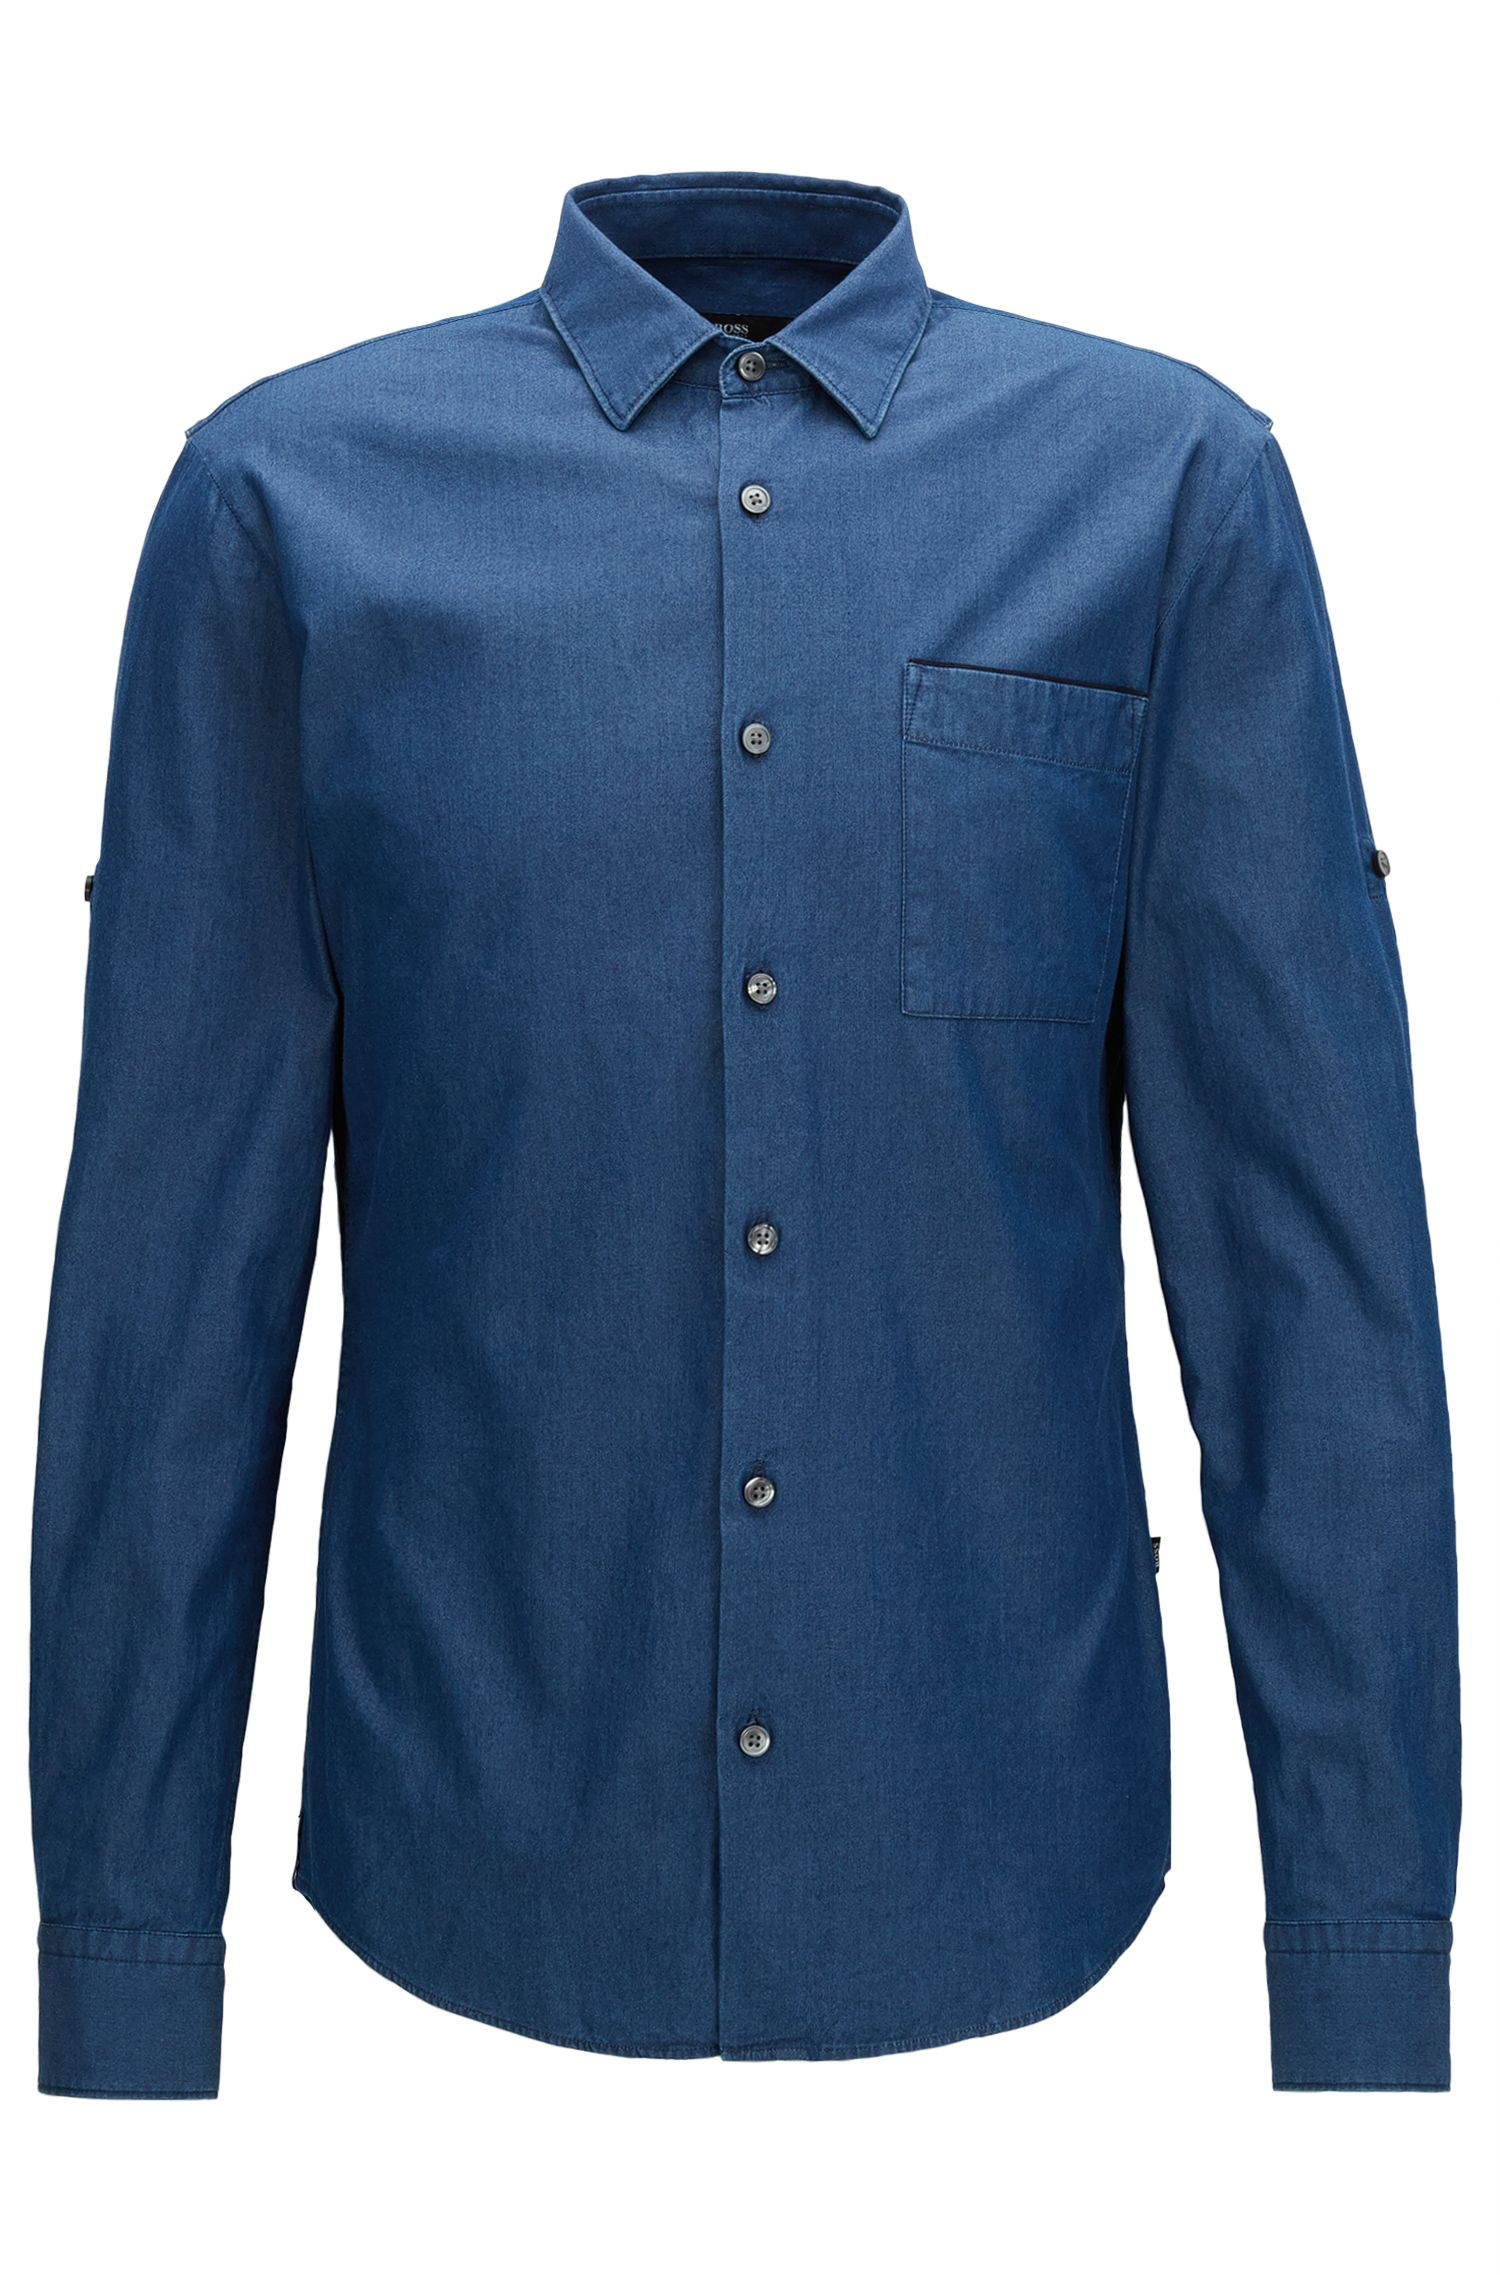 Slim-fit shirt in Italian indigo denim